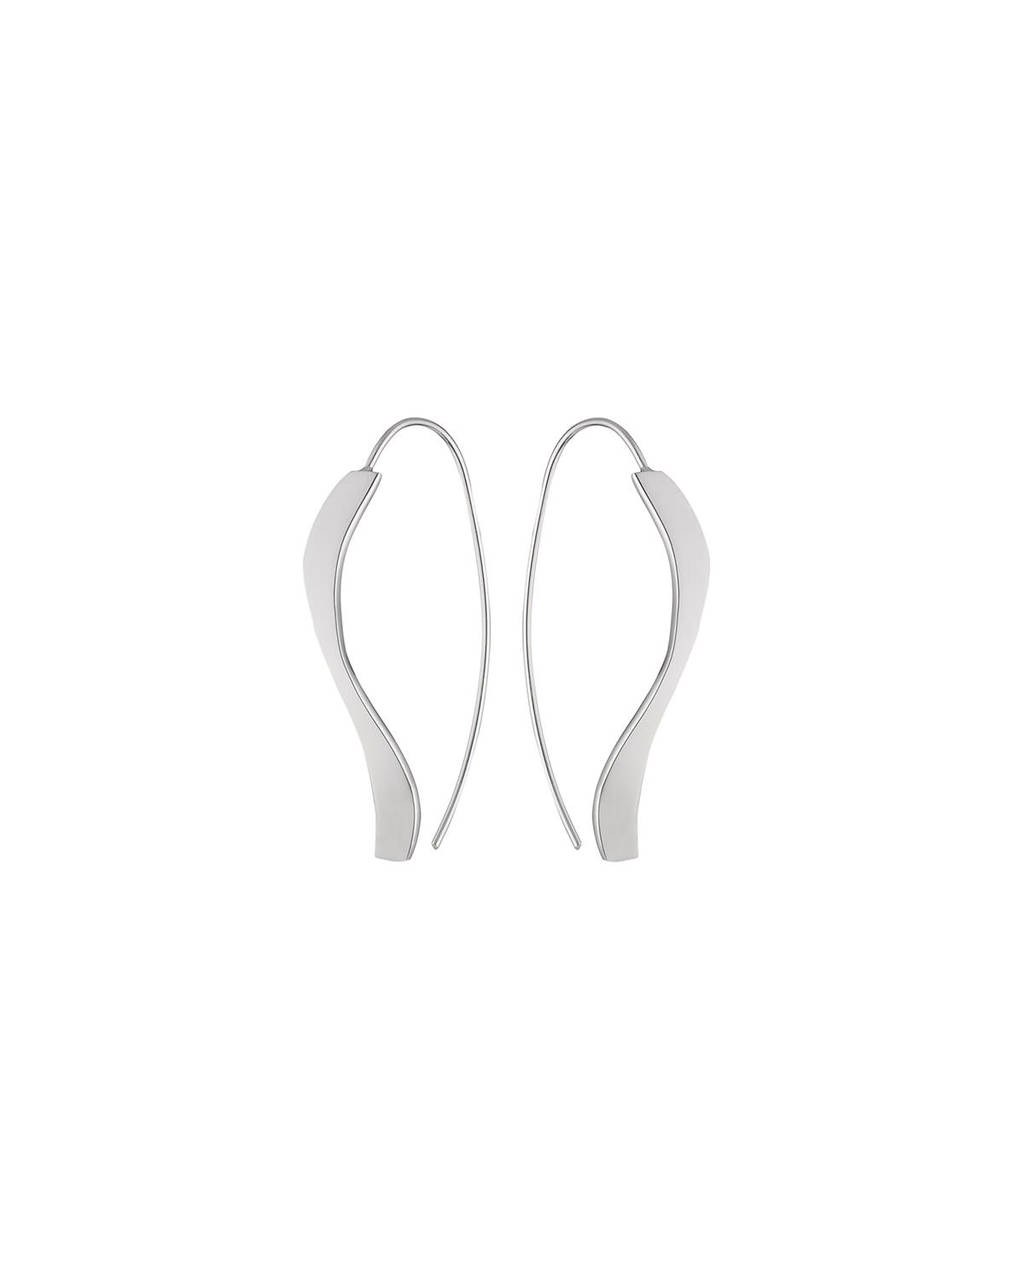 Sterling Silver Swirl Earrings - predominant colour: silver; occasions: evening, creative work; style: drop; length: long; size: large/oversized; material: chain/metal; fastening: pierced; finish: plain; season: s/s 2016; wardrobe: highlight